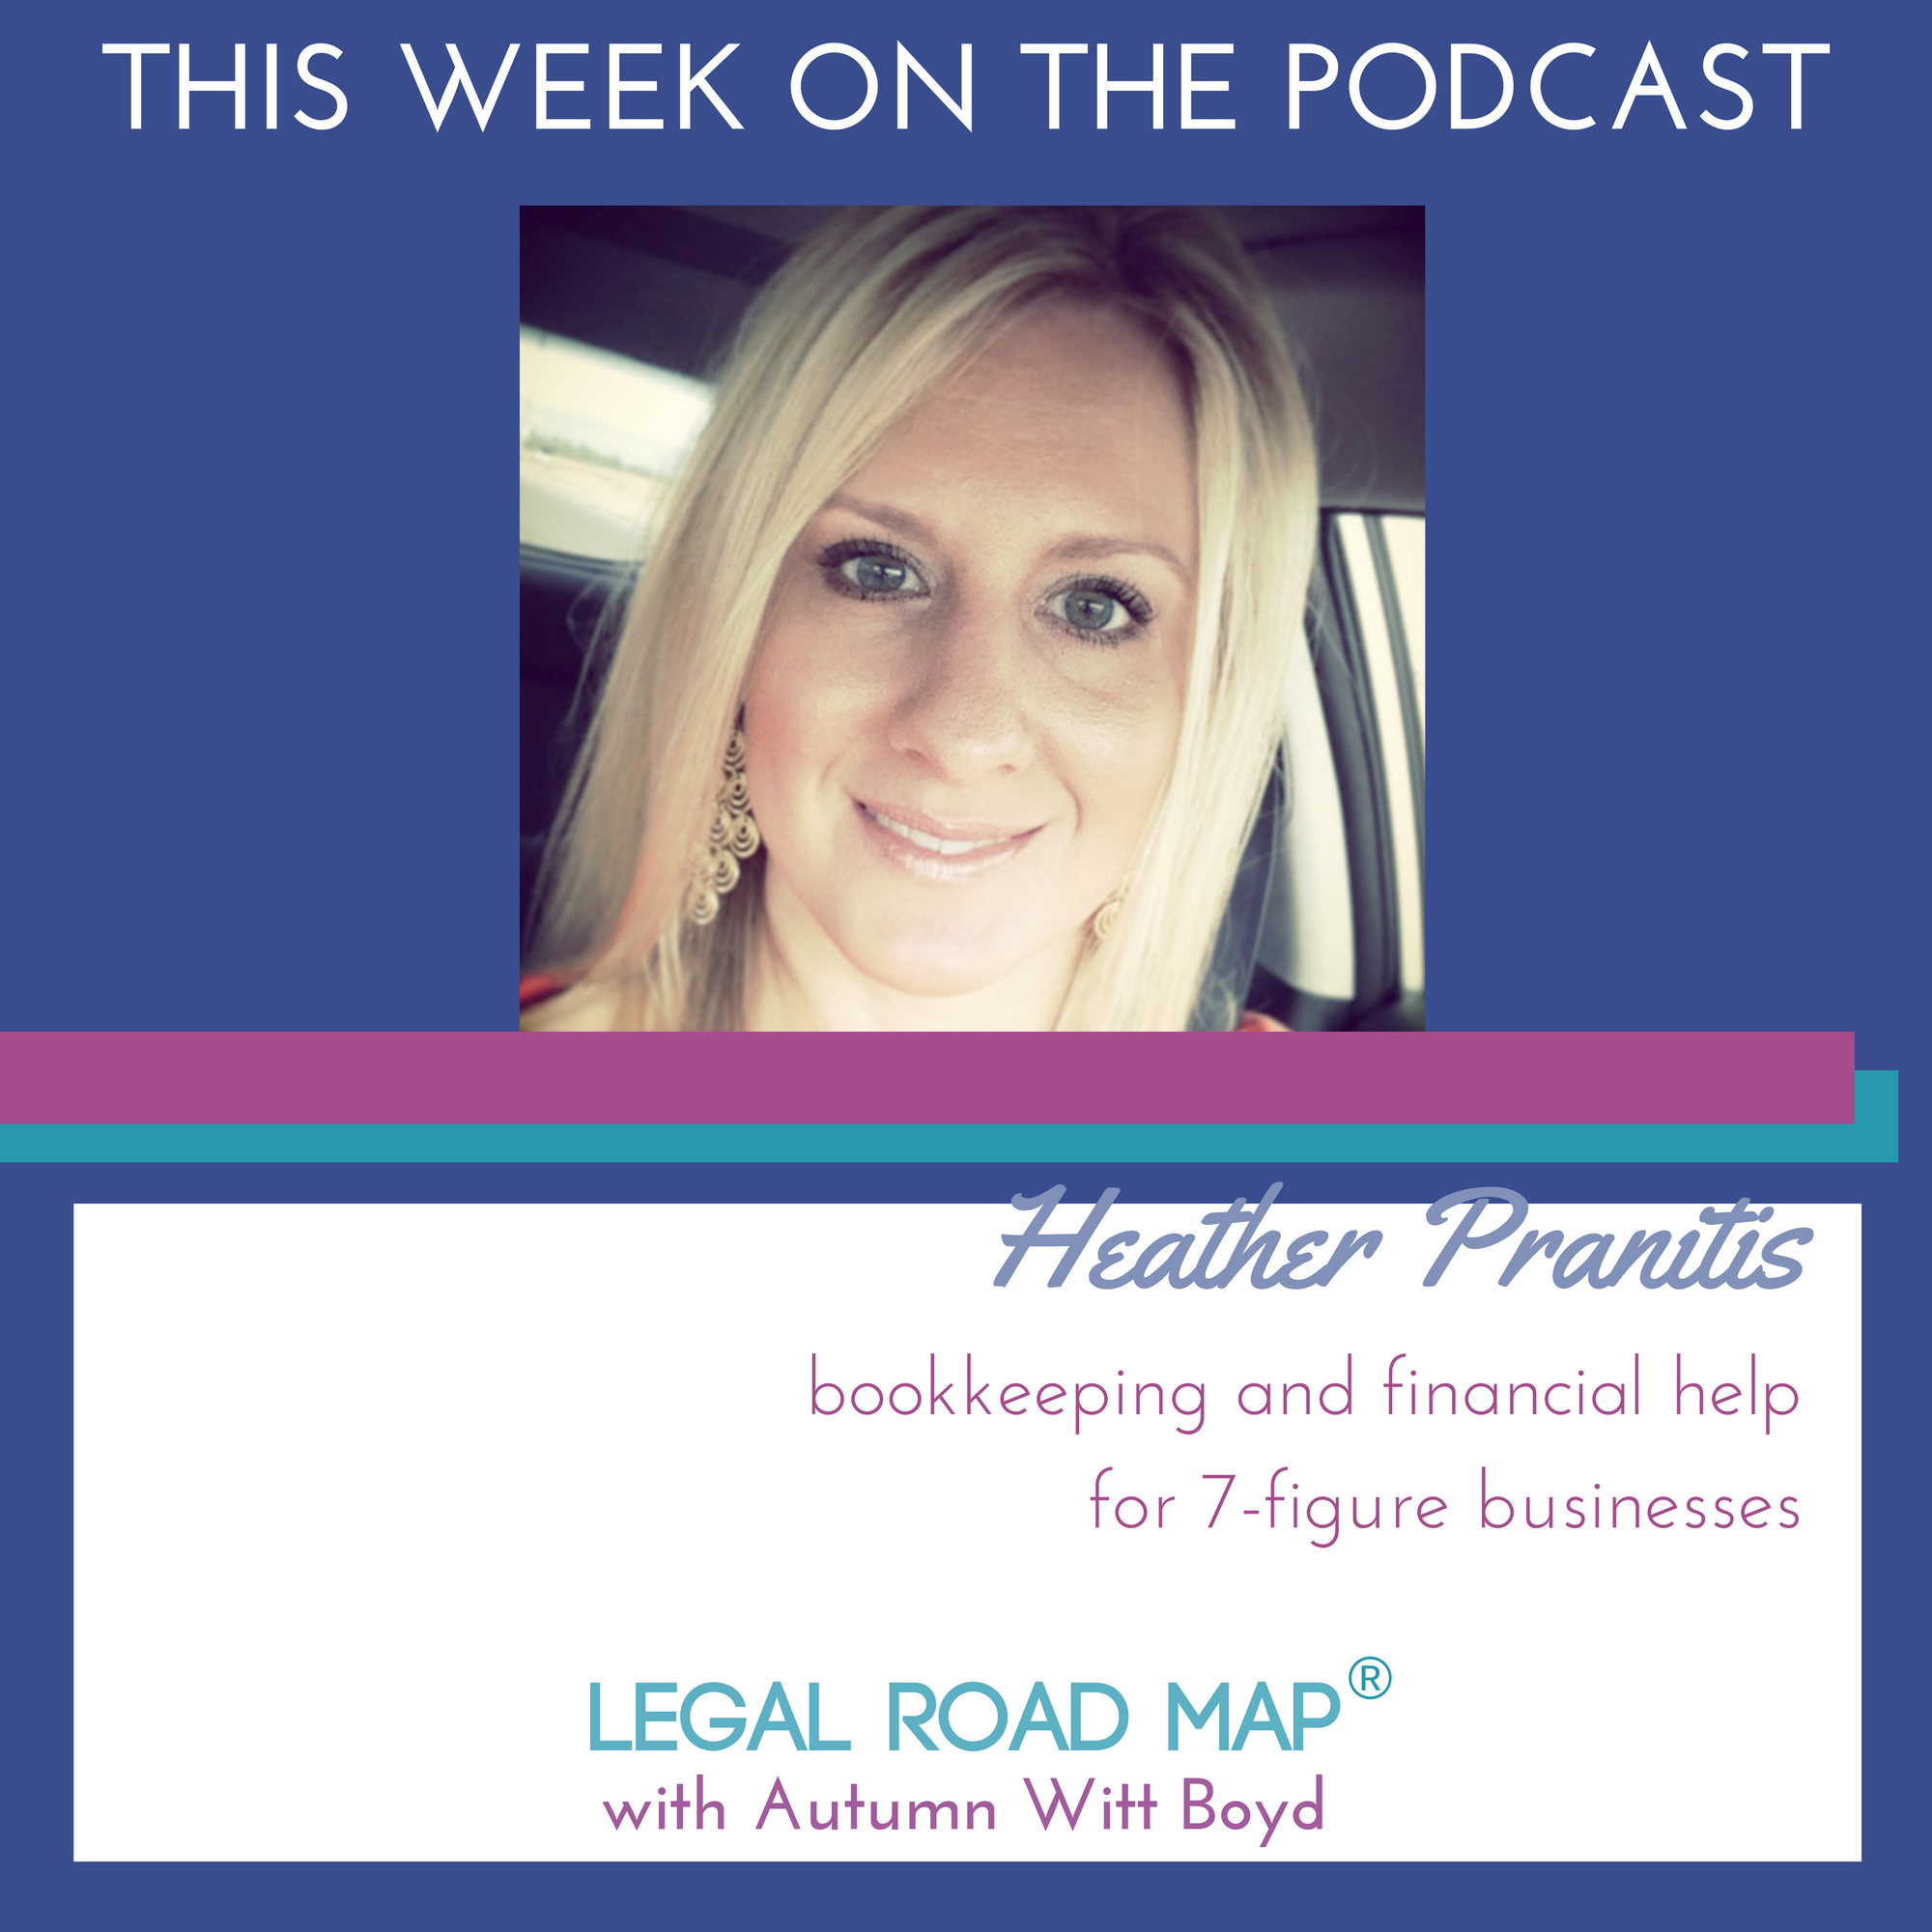 Bookkeeping and financial help for 7-figure businesses with Heather Pranitis (Legal Road Map® Podcast S3E43)